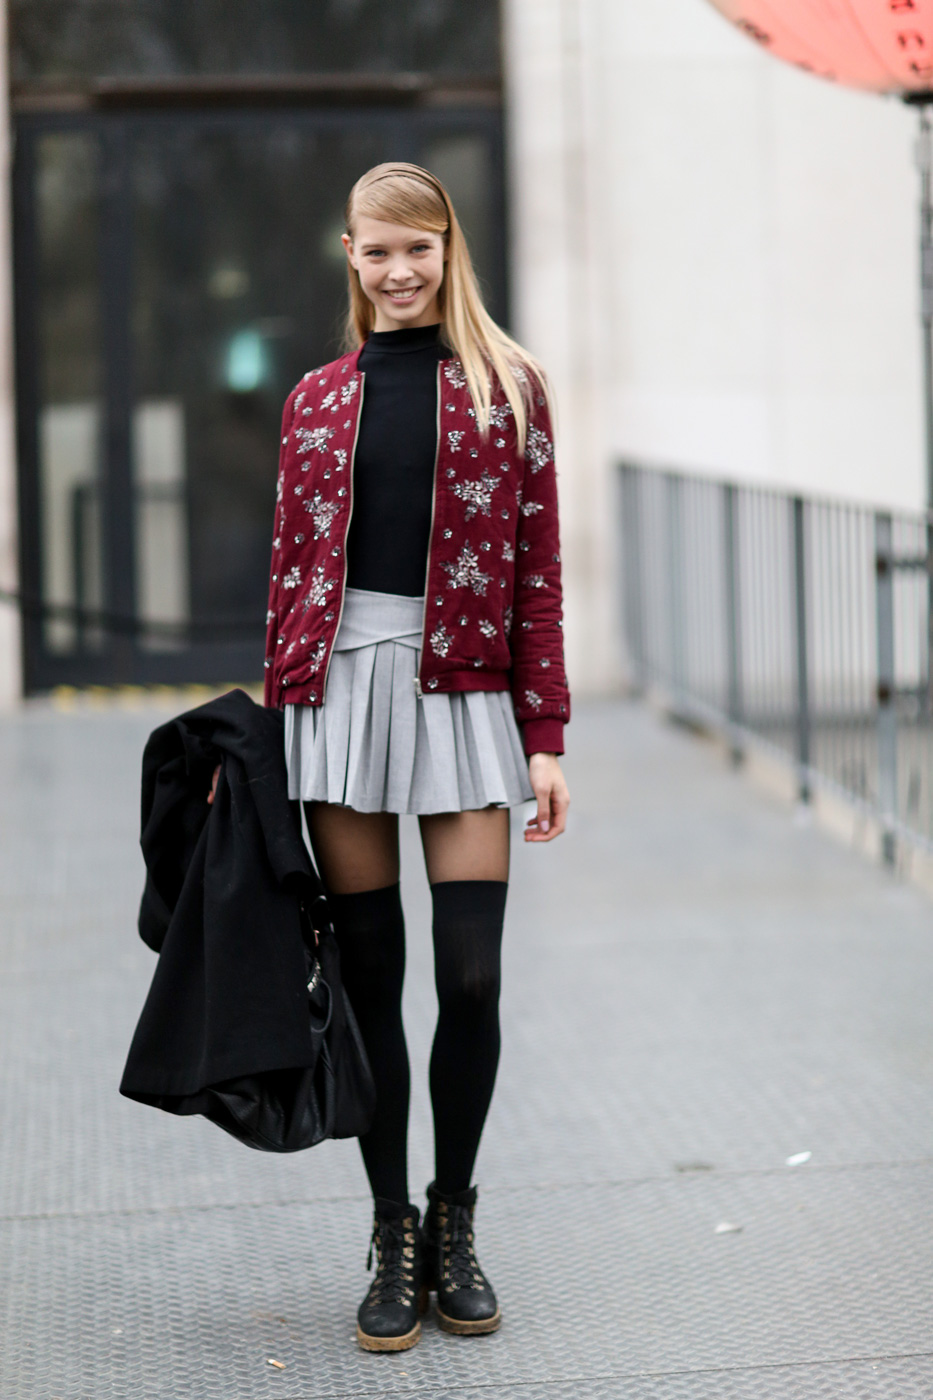 Model in casual outfits.